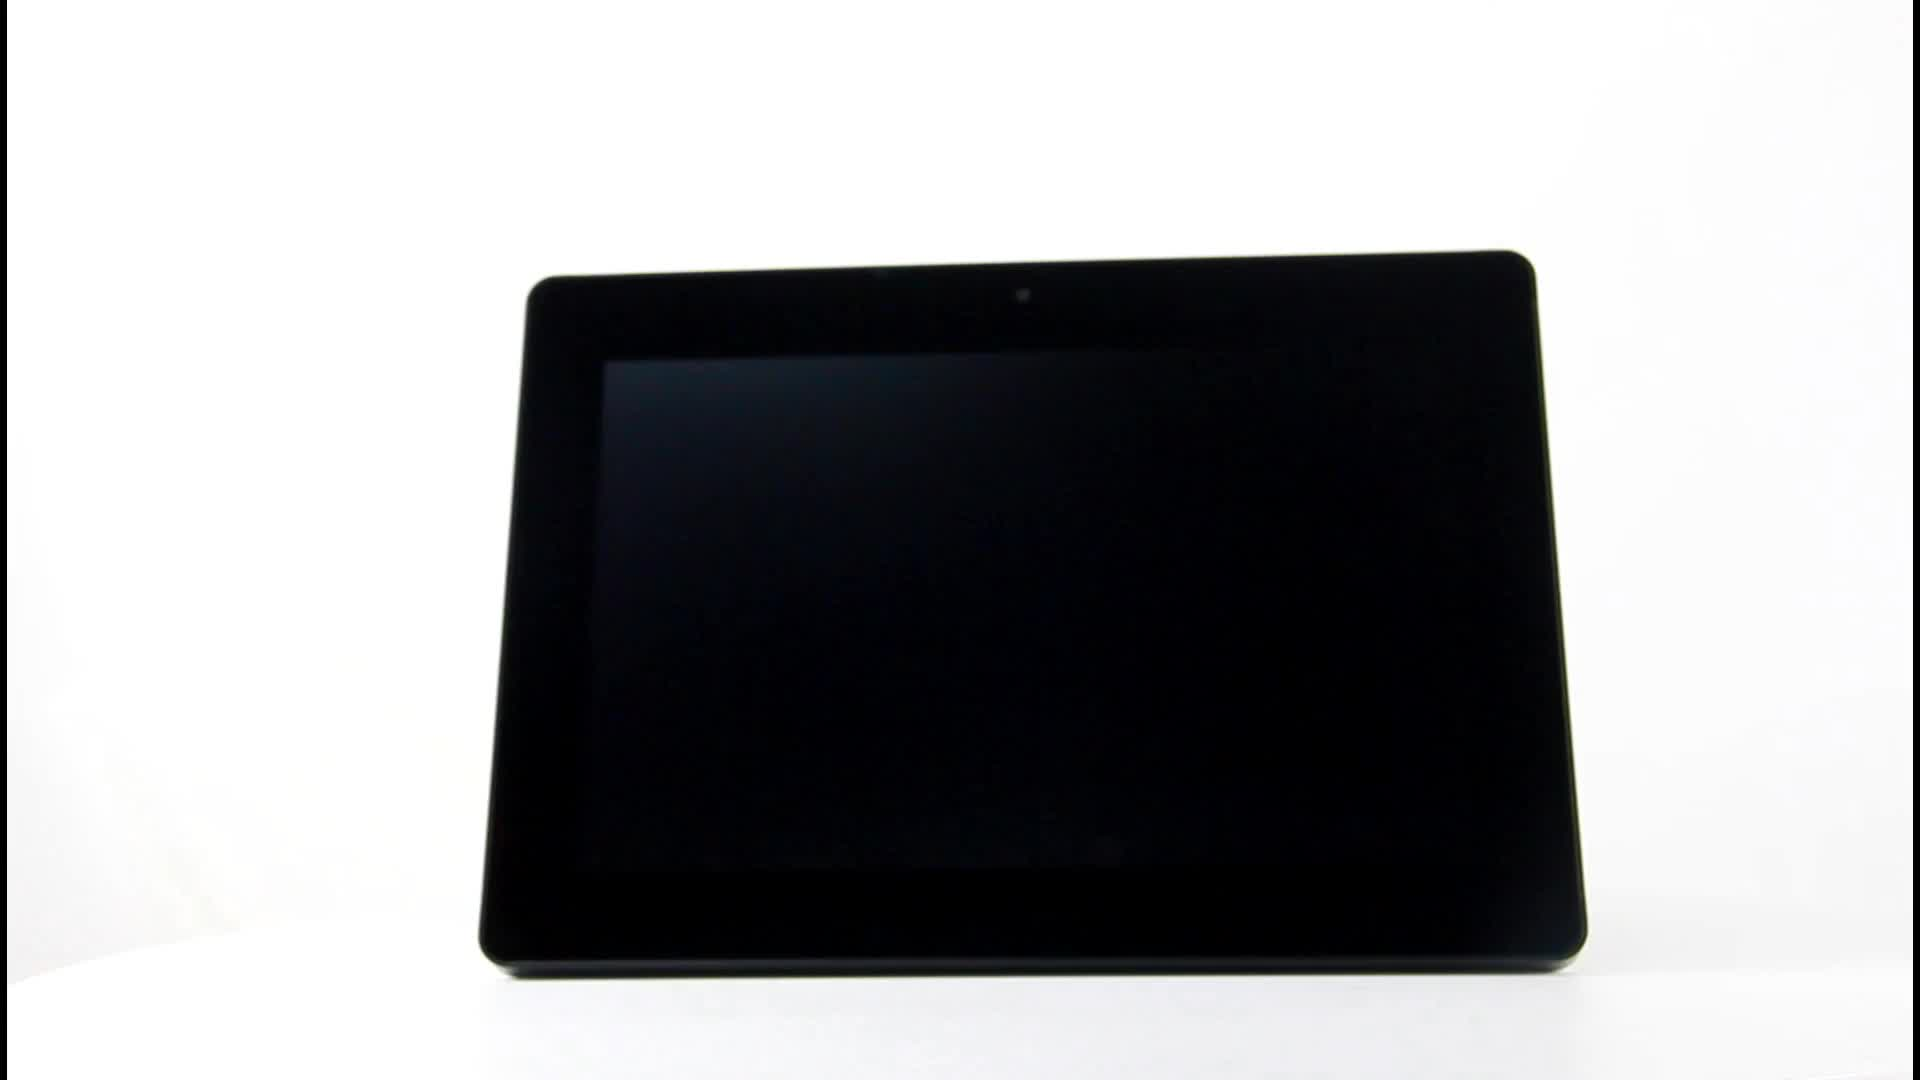 POS Kiosk AIO 12 inch Android Tablet with IPS Touch Screen Wifi RJ45